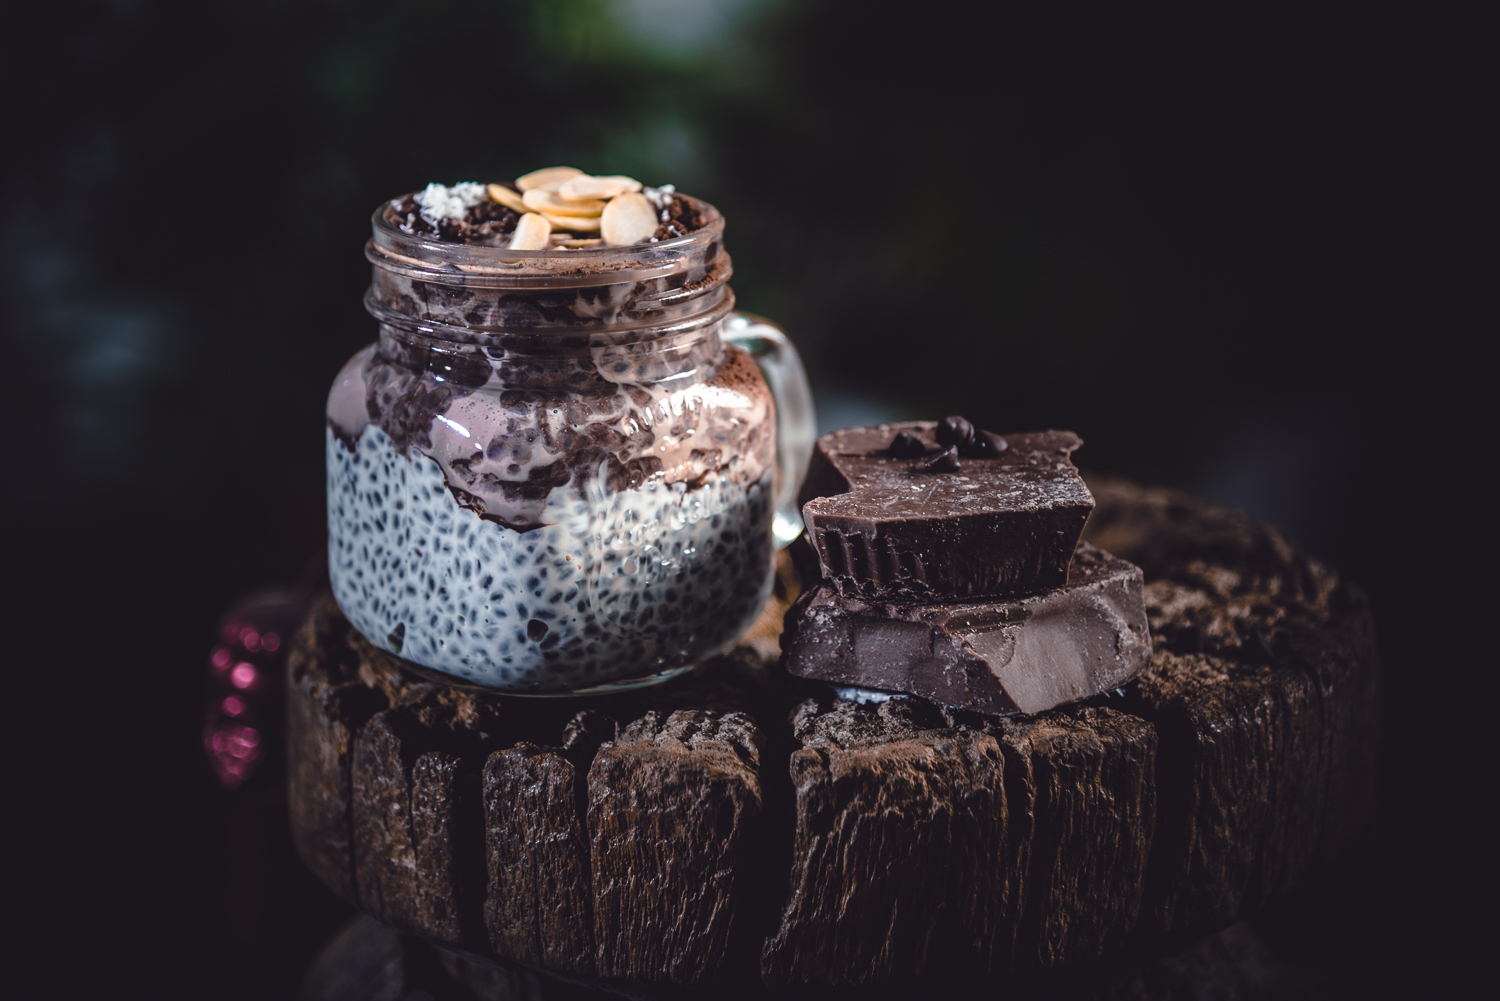 Vanilla and Chocolate Chia Seed Pudding